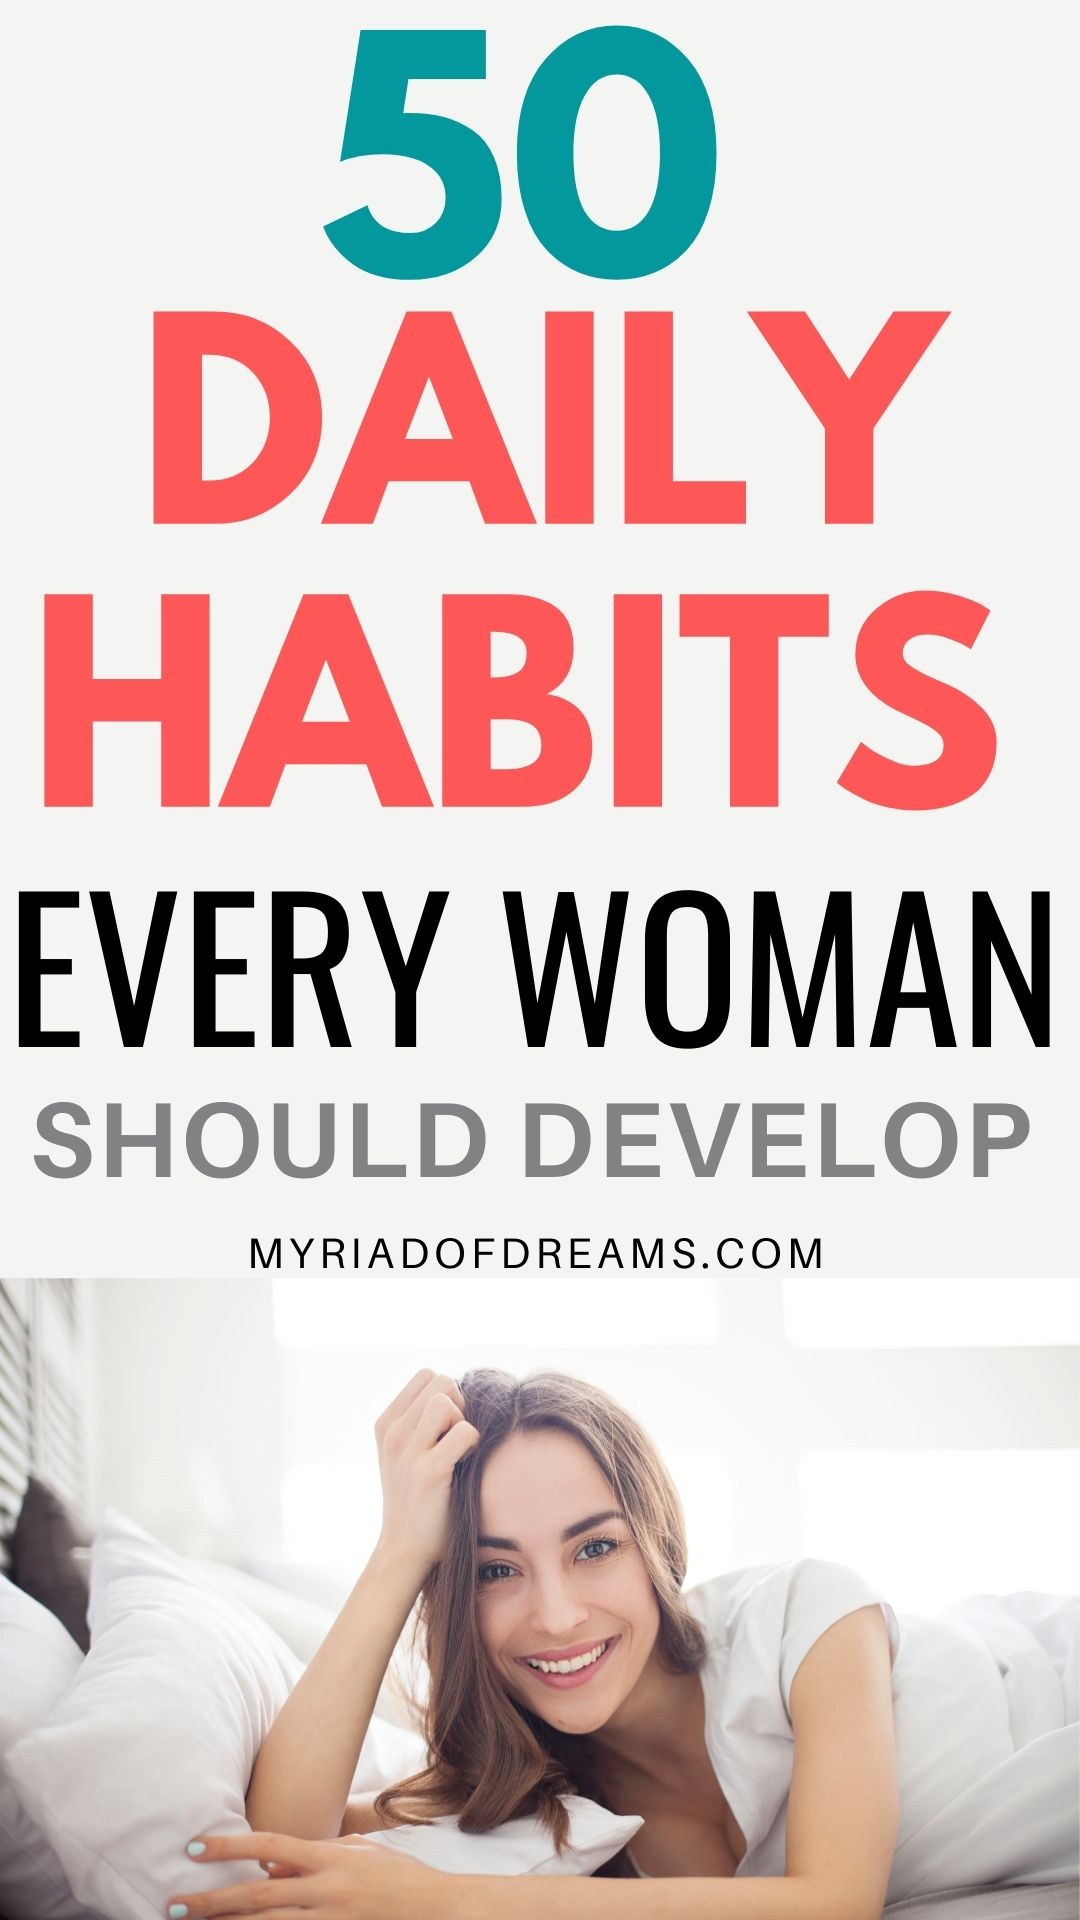 50 daily habits to include in your daily routine for a successful and happier life. Good habits to improve your life. Good daily habits to change your life. Self improvement and personal development ideas. Daily habits for personal growth. Quit bad habits and adopt healthy daily habits for a better life. Set personal goals and get your life together. How to improve yourself with daily habits. #habits #personalgrowth #dailyroutine #goodhabits #girlboss